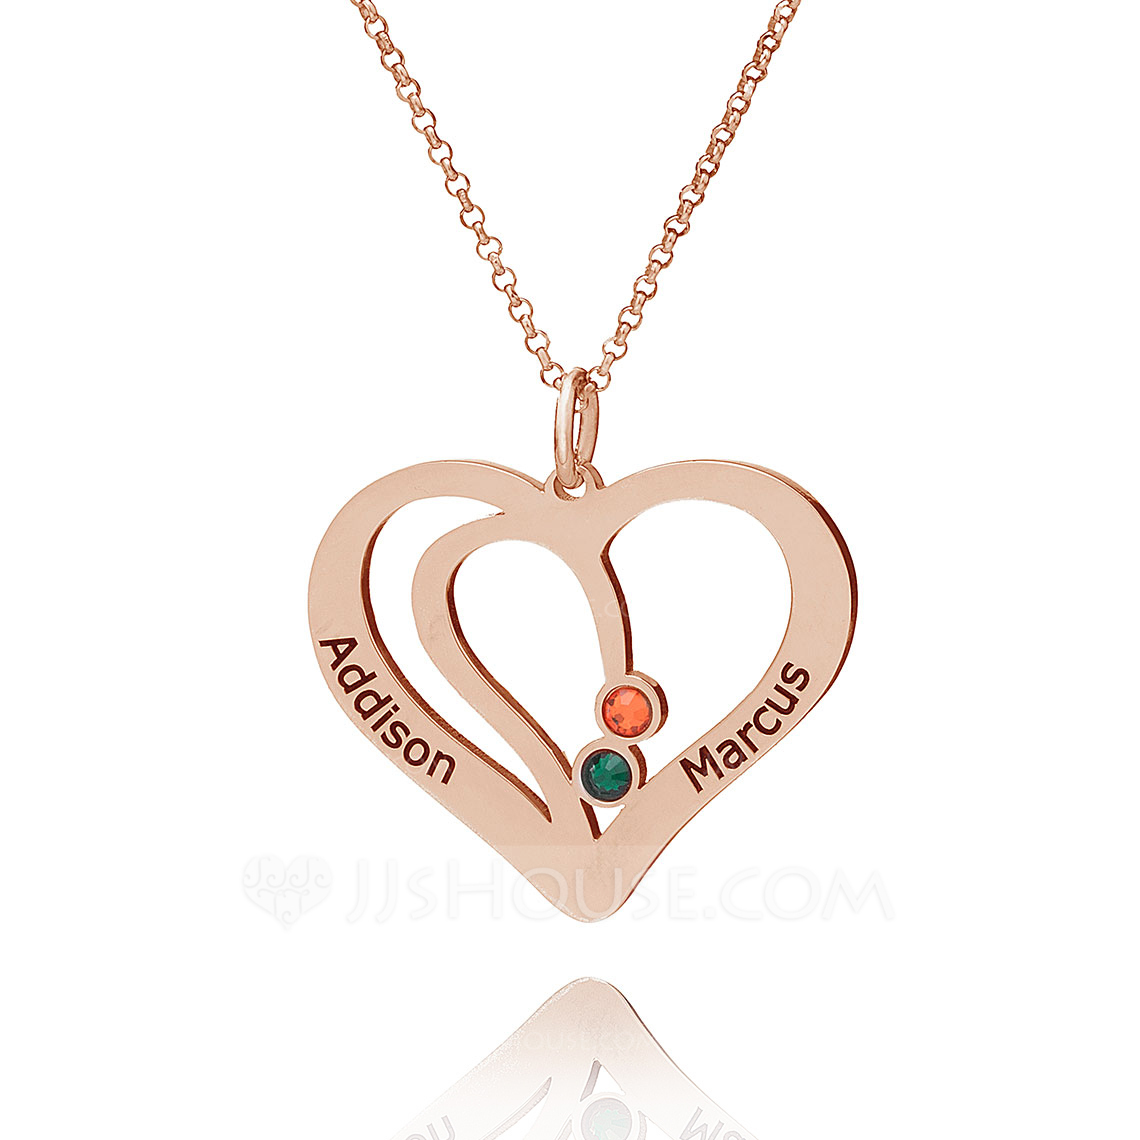 Custom 18k Rose Gold Plated Silver Overlapping Eternity Two Heart Necklace Birthstone Necklace Engraved Necklace With Birthstone - Christmas Gifts